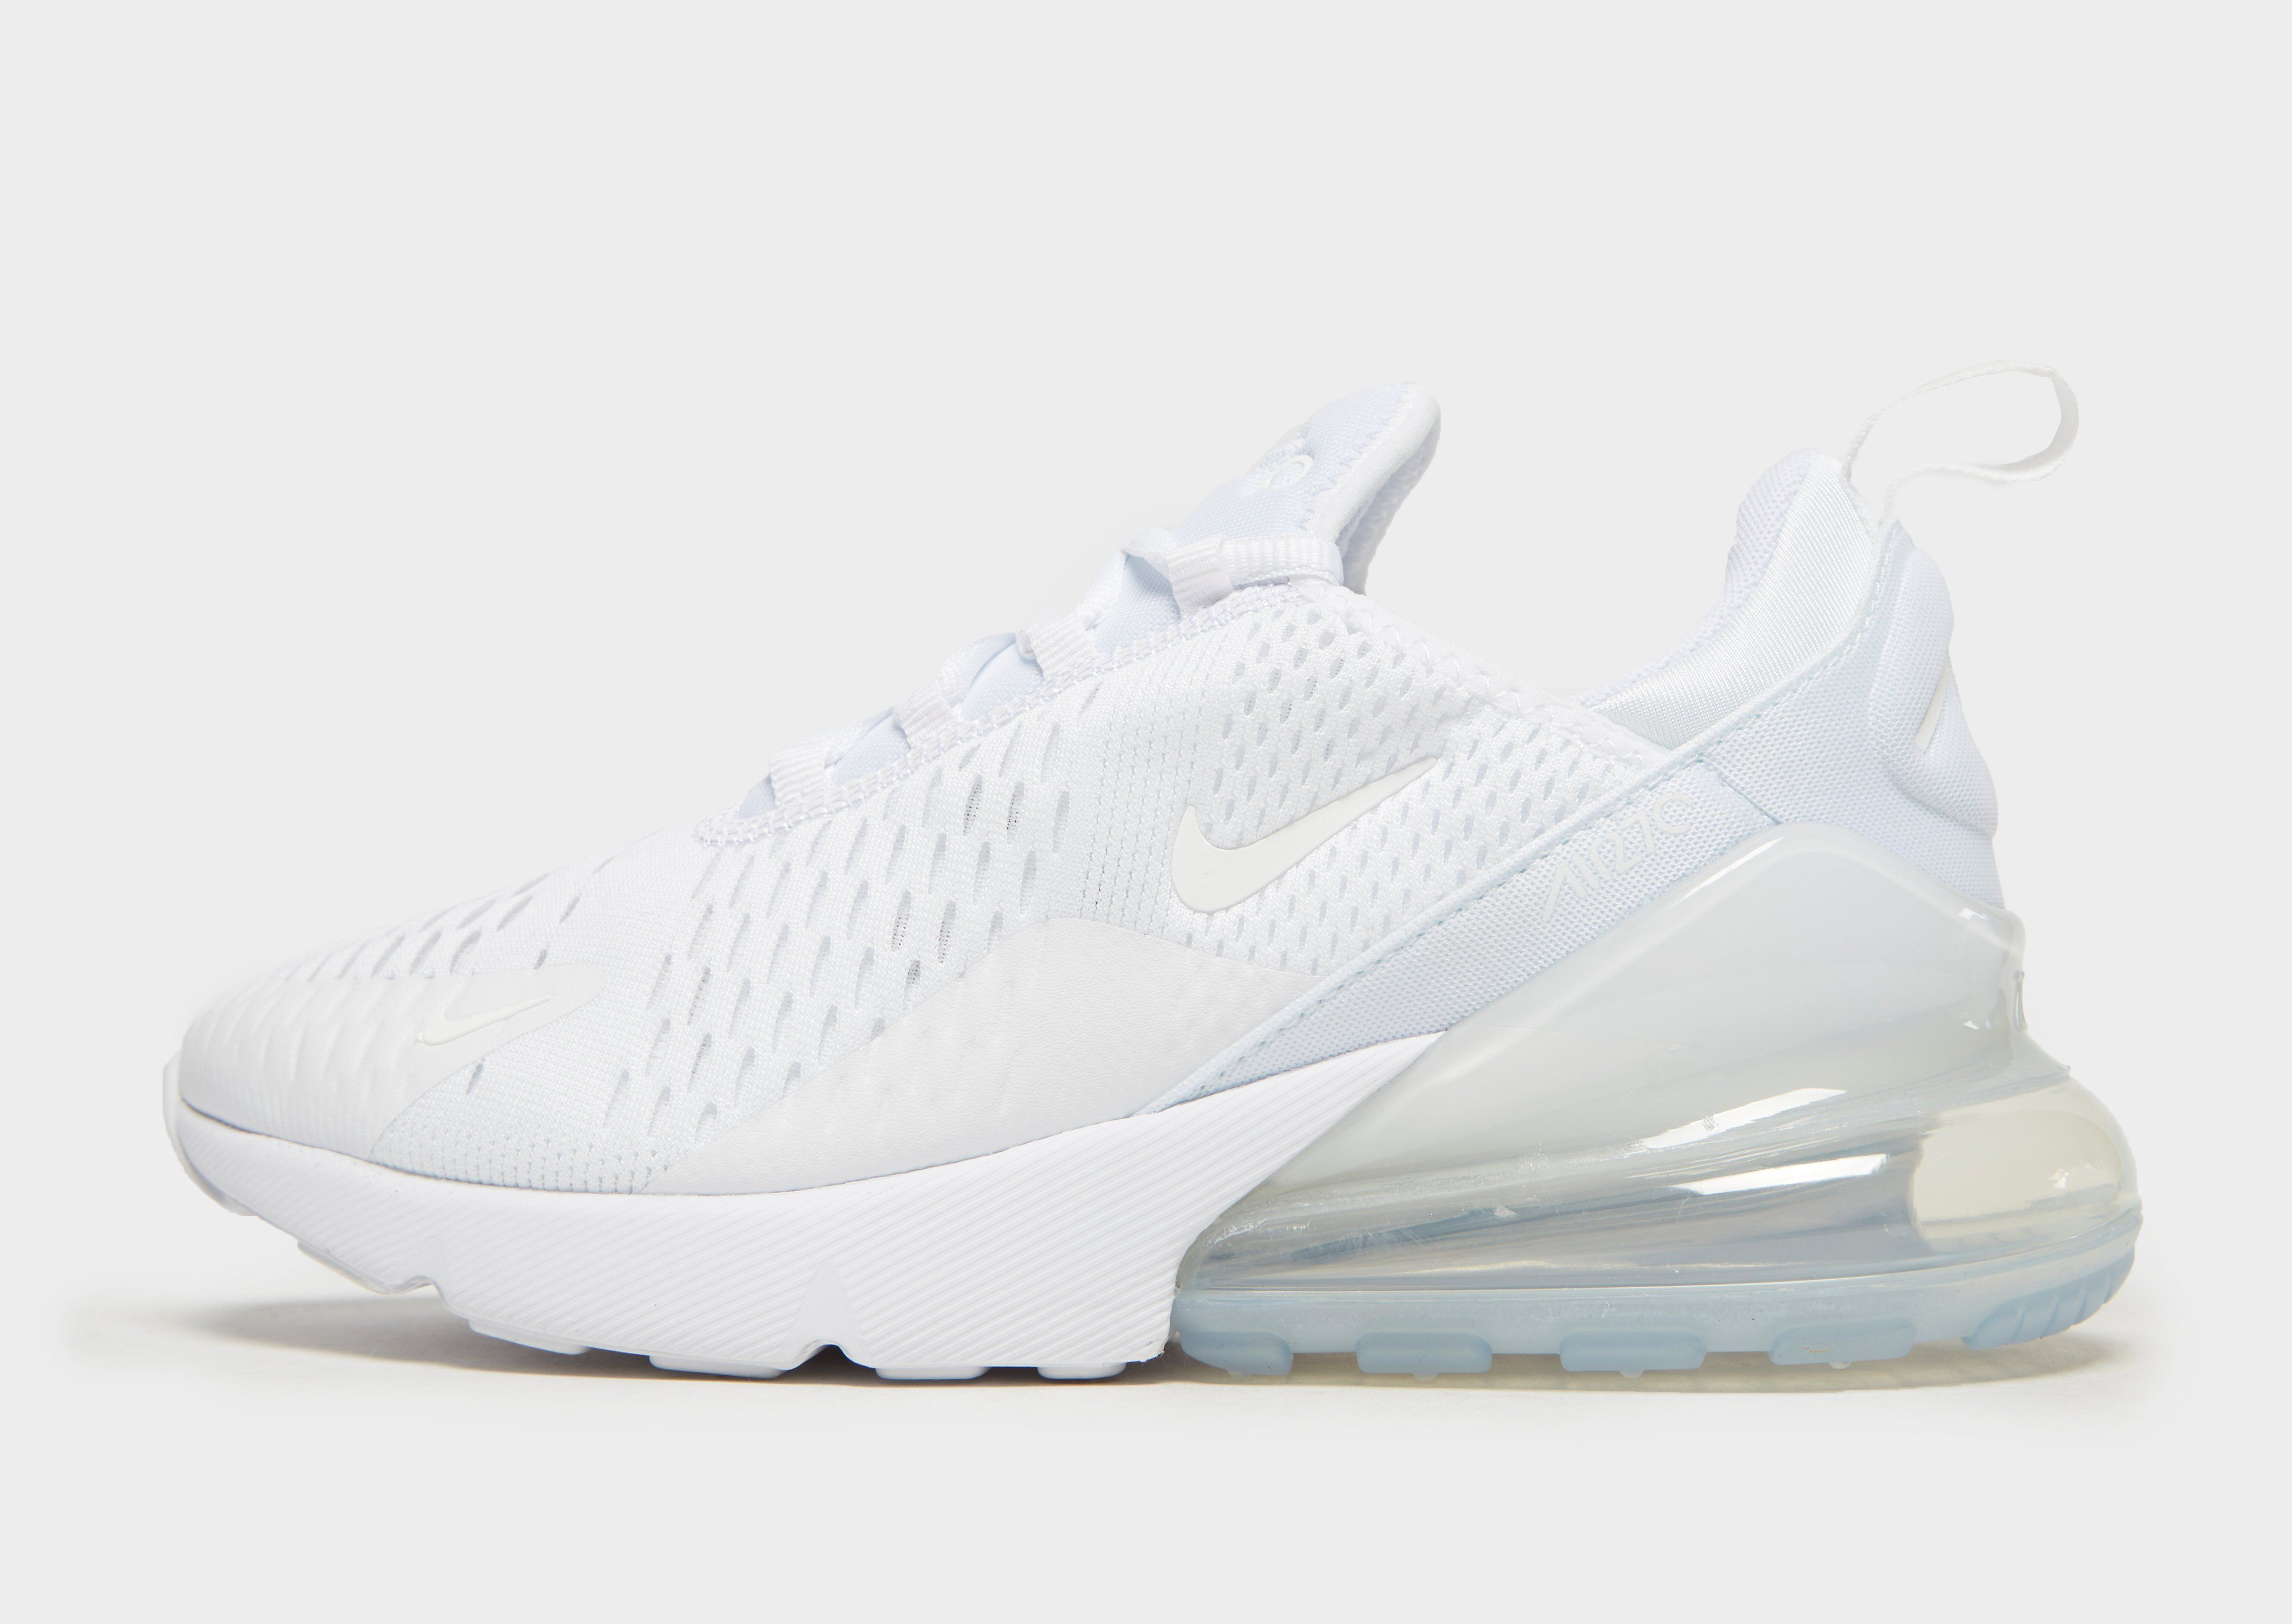 premium selection f89a8 e6239 Nike Air Max 270 Women's Shoe | JD Sports